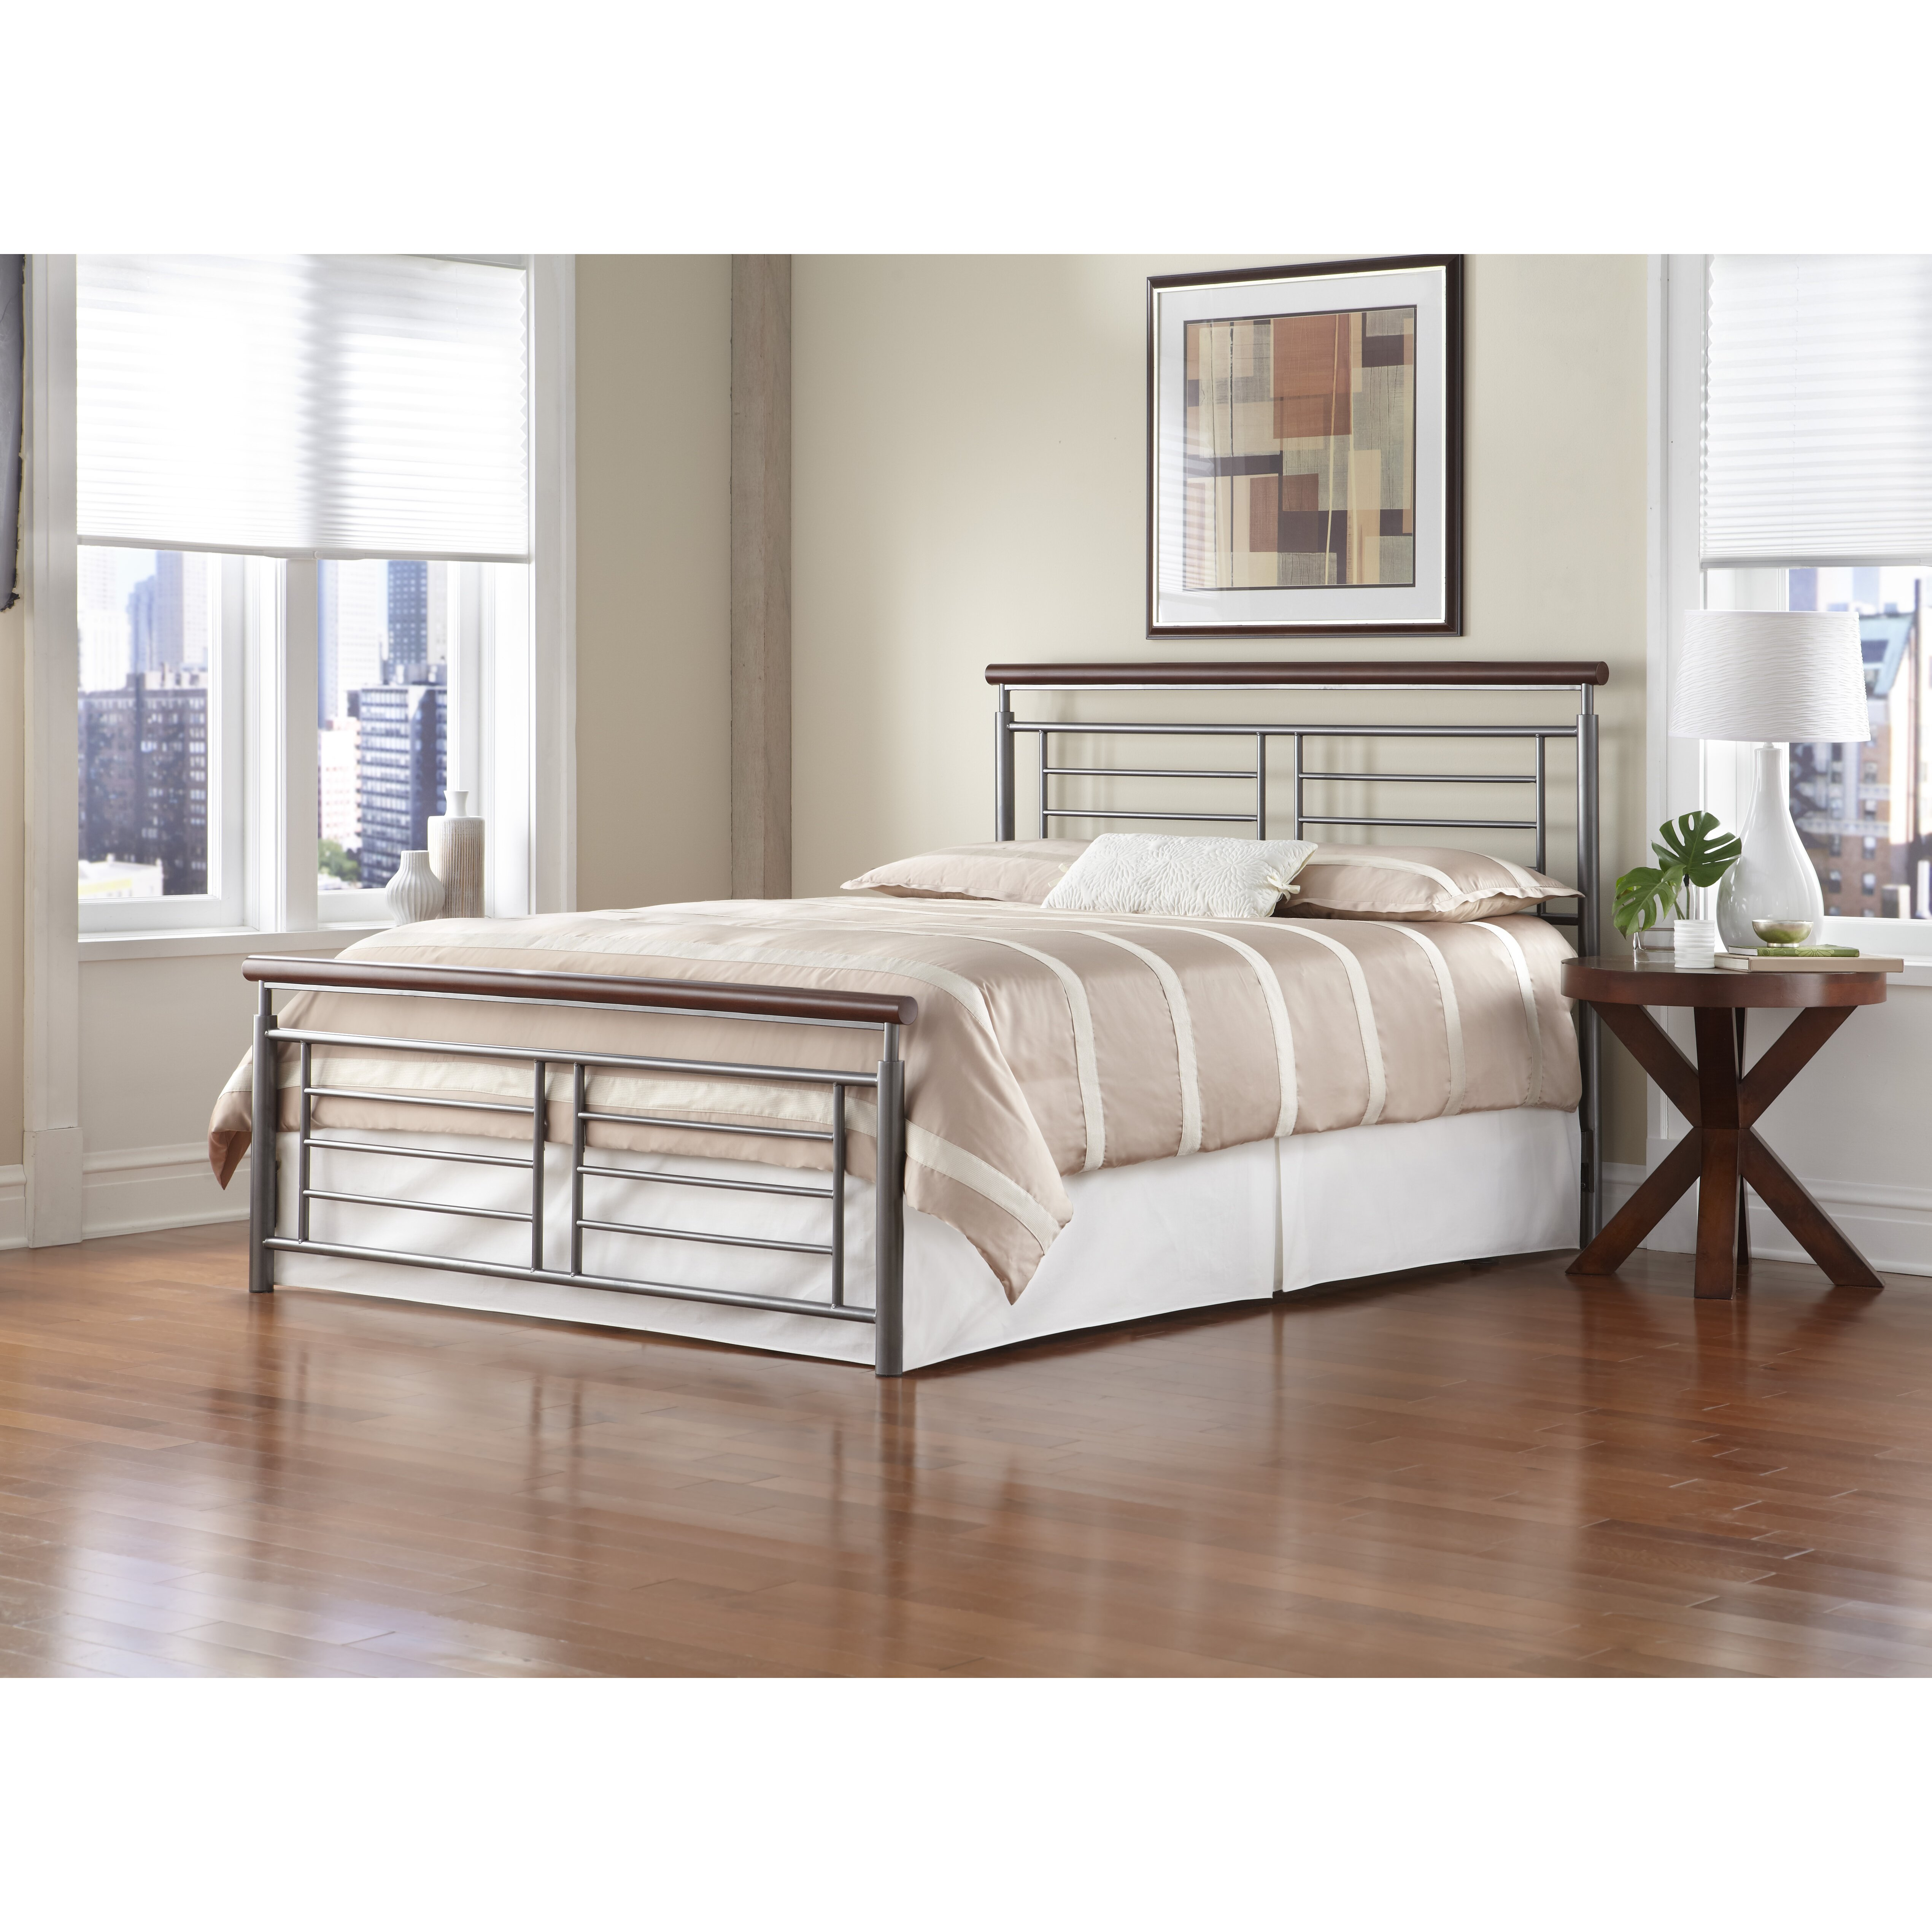 Fashion Bed Group Fontane Metal Headboard Reviews Wayfair